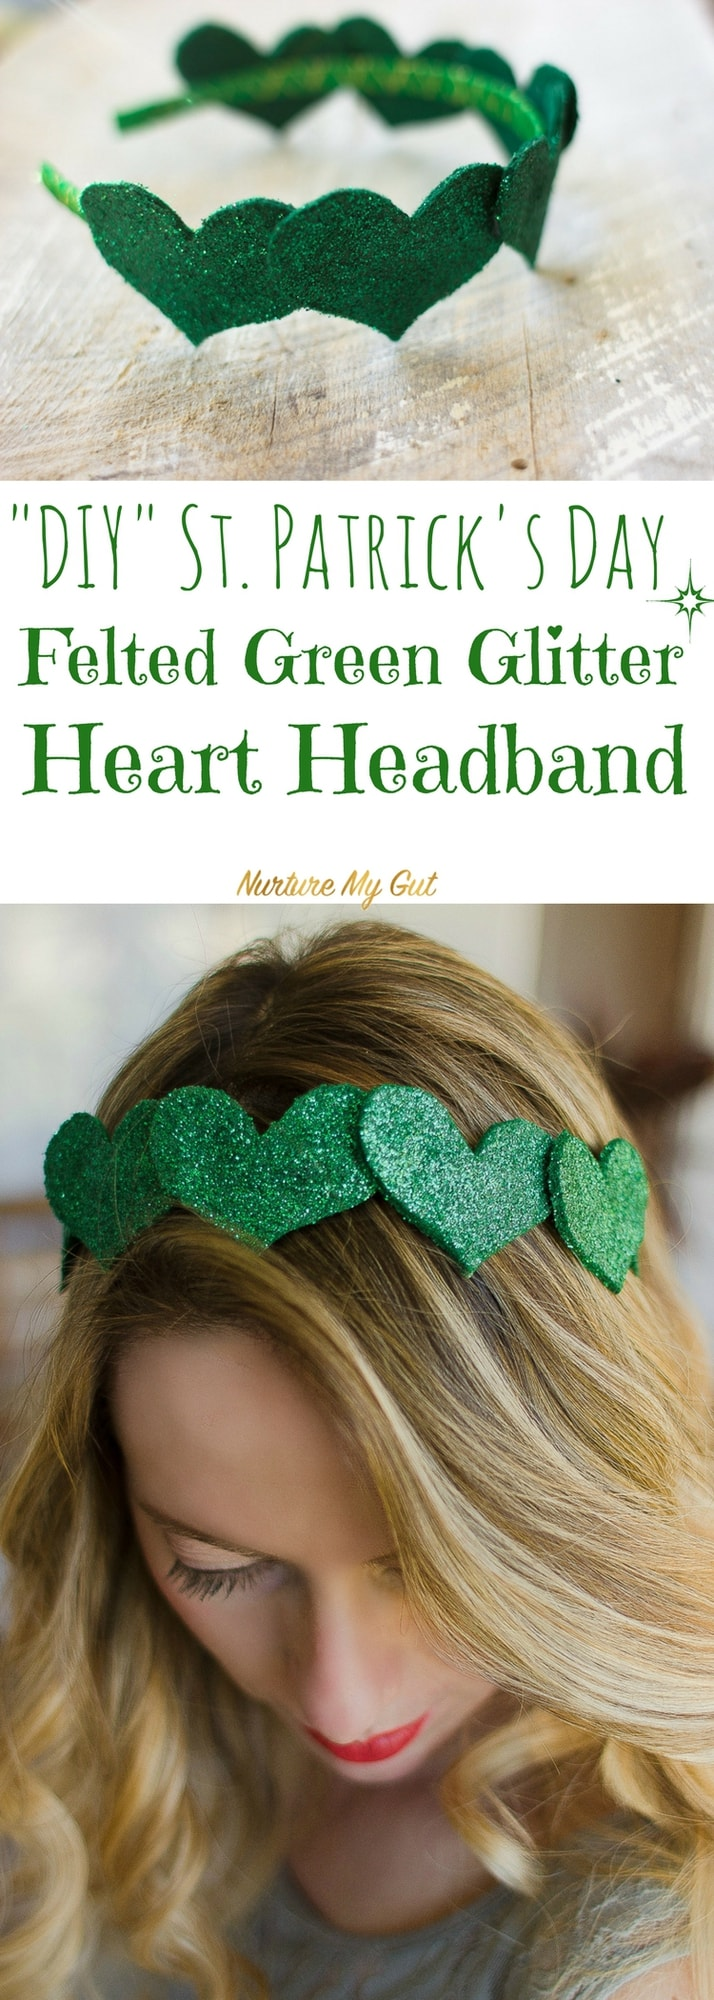 DIY St. Patrick's Day Felted Green Glitter Heart Headband